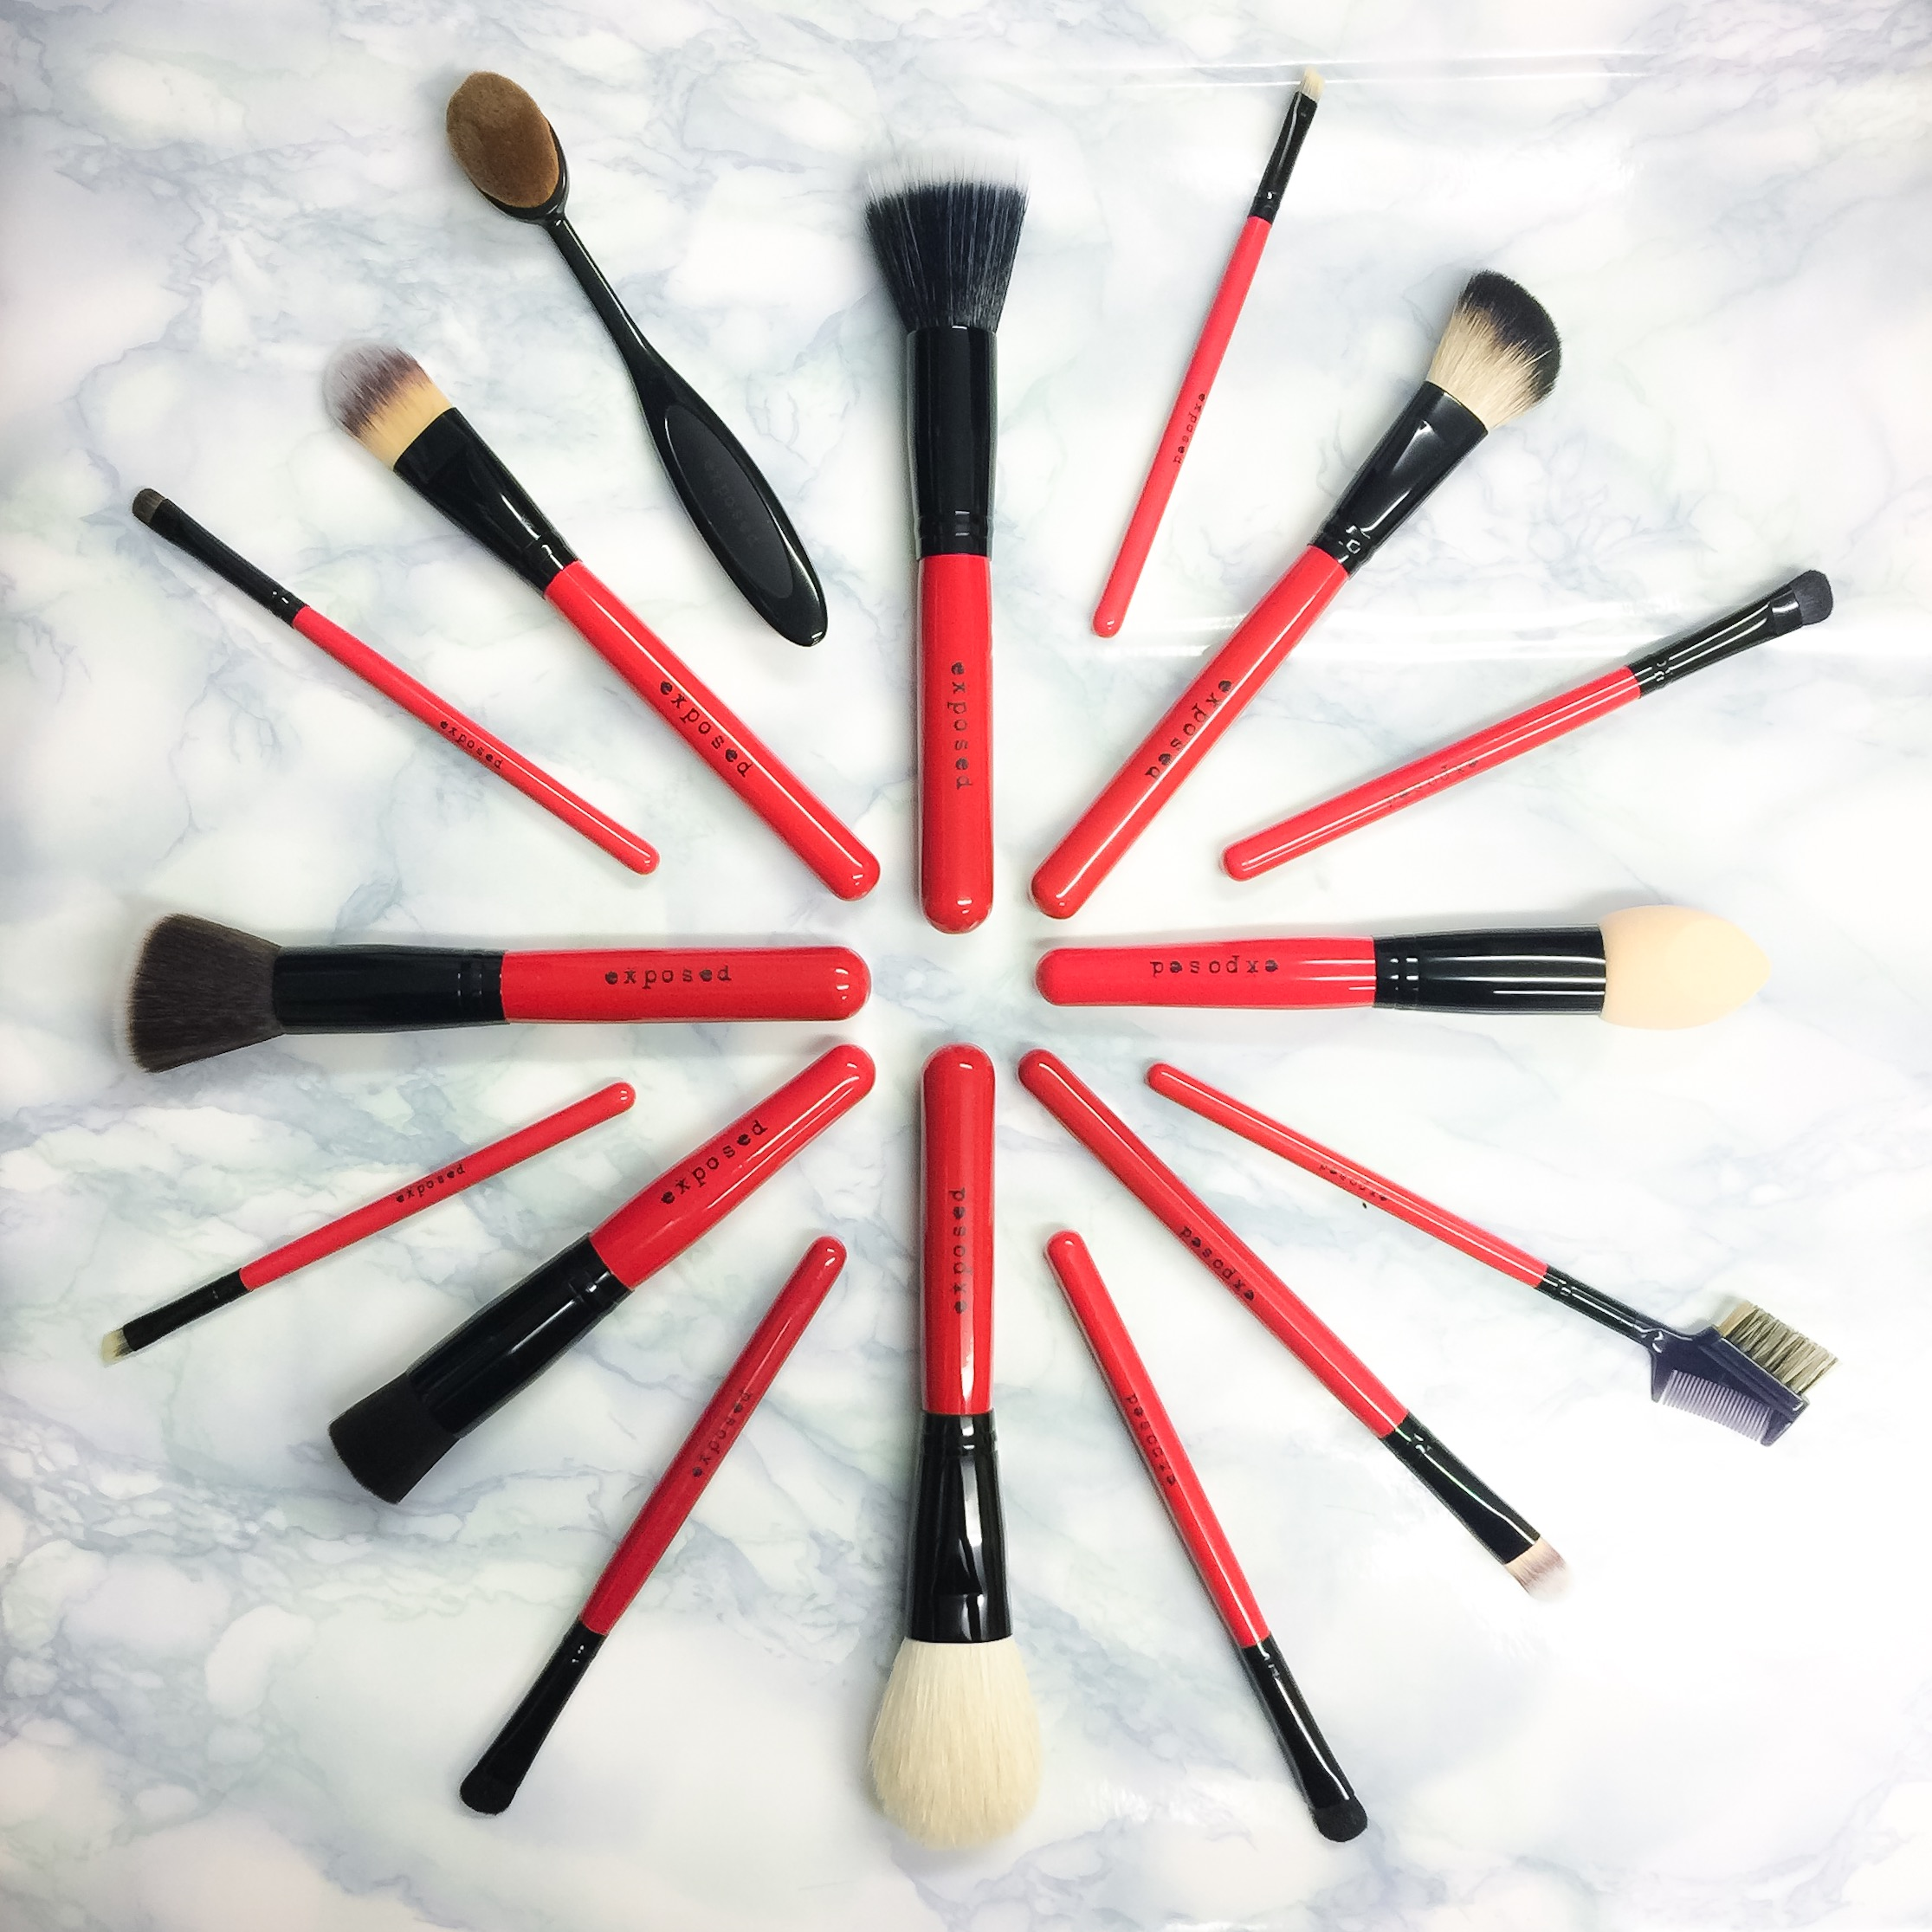 Exposed Cosmetics Pro Make Up Tools